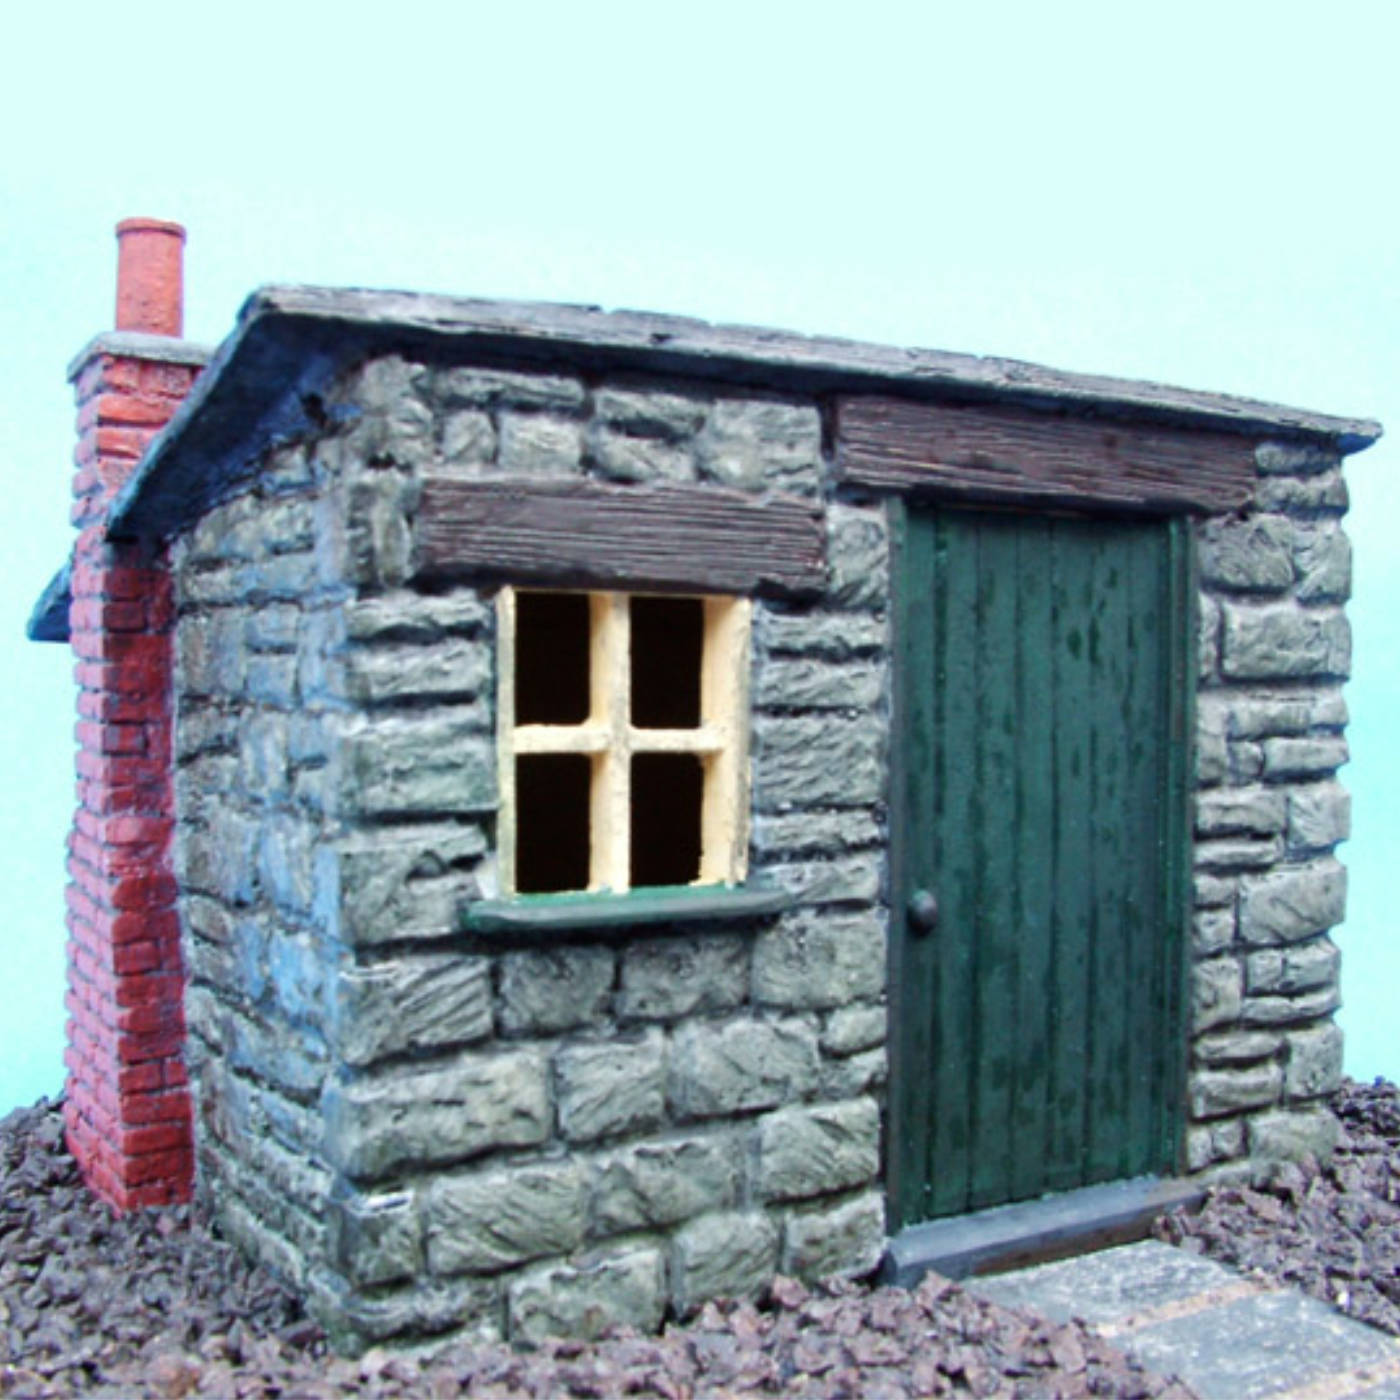 kit product, pvw003-lineside-hut-office-slate-roof, Pendle Valley Workshop, UK